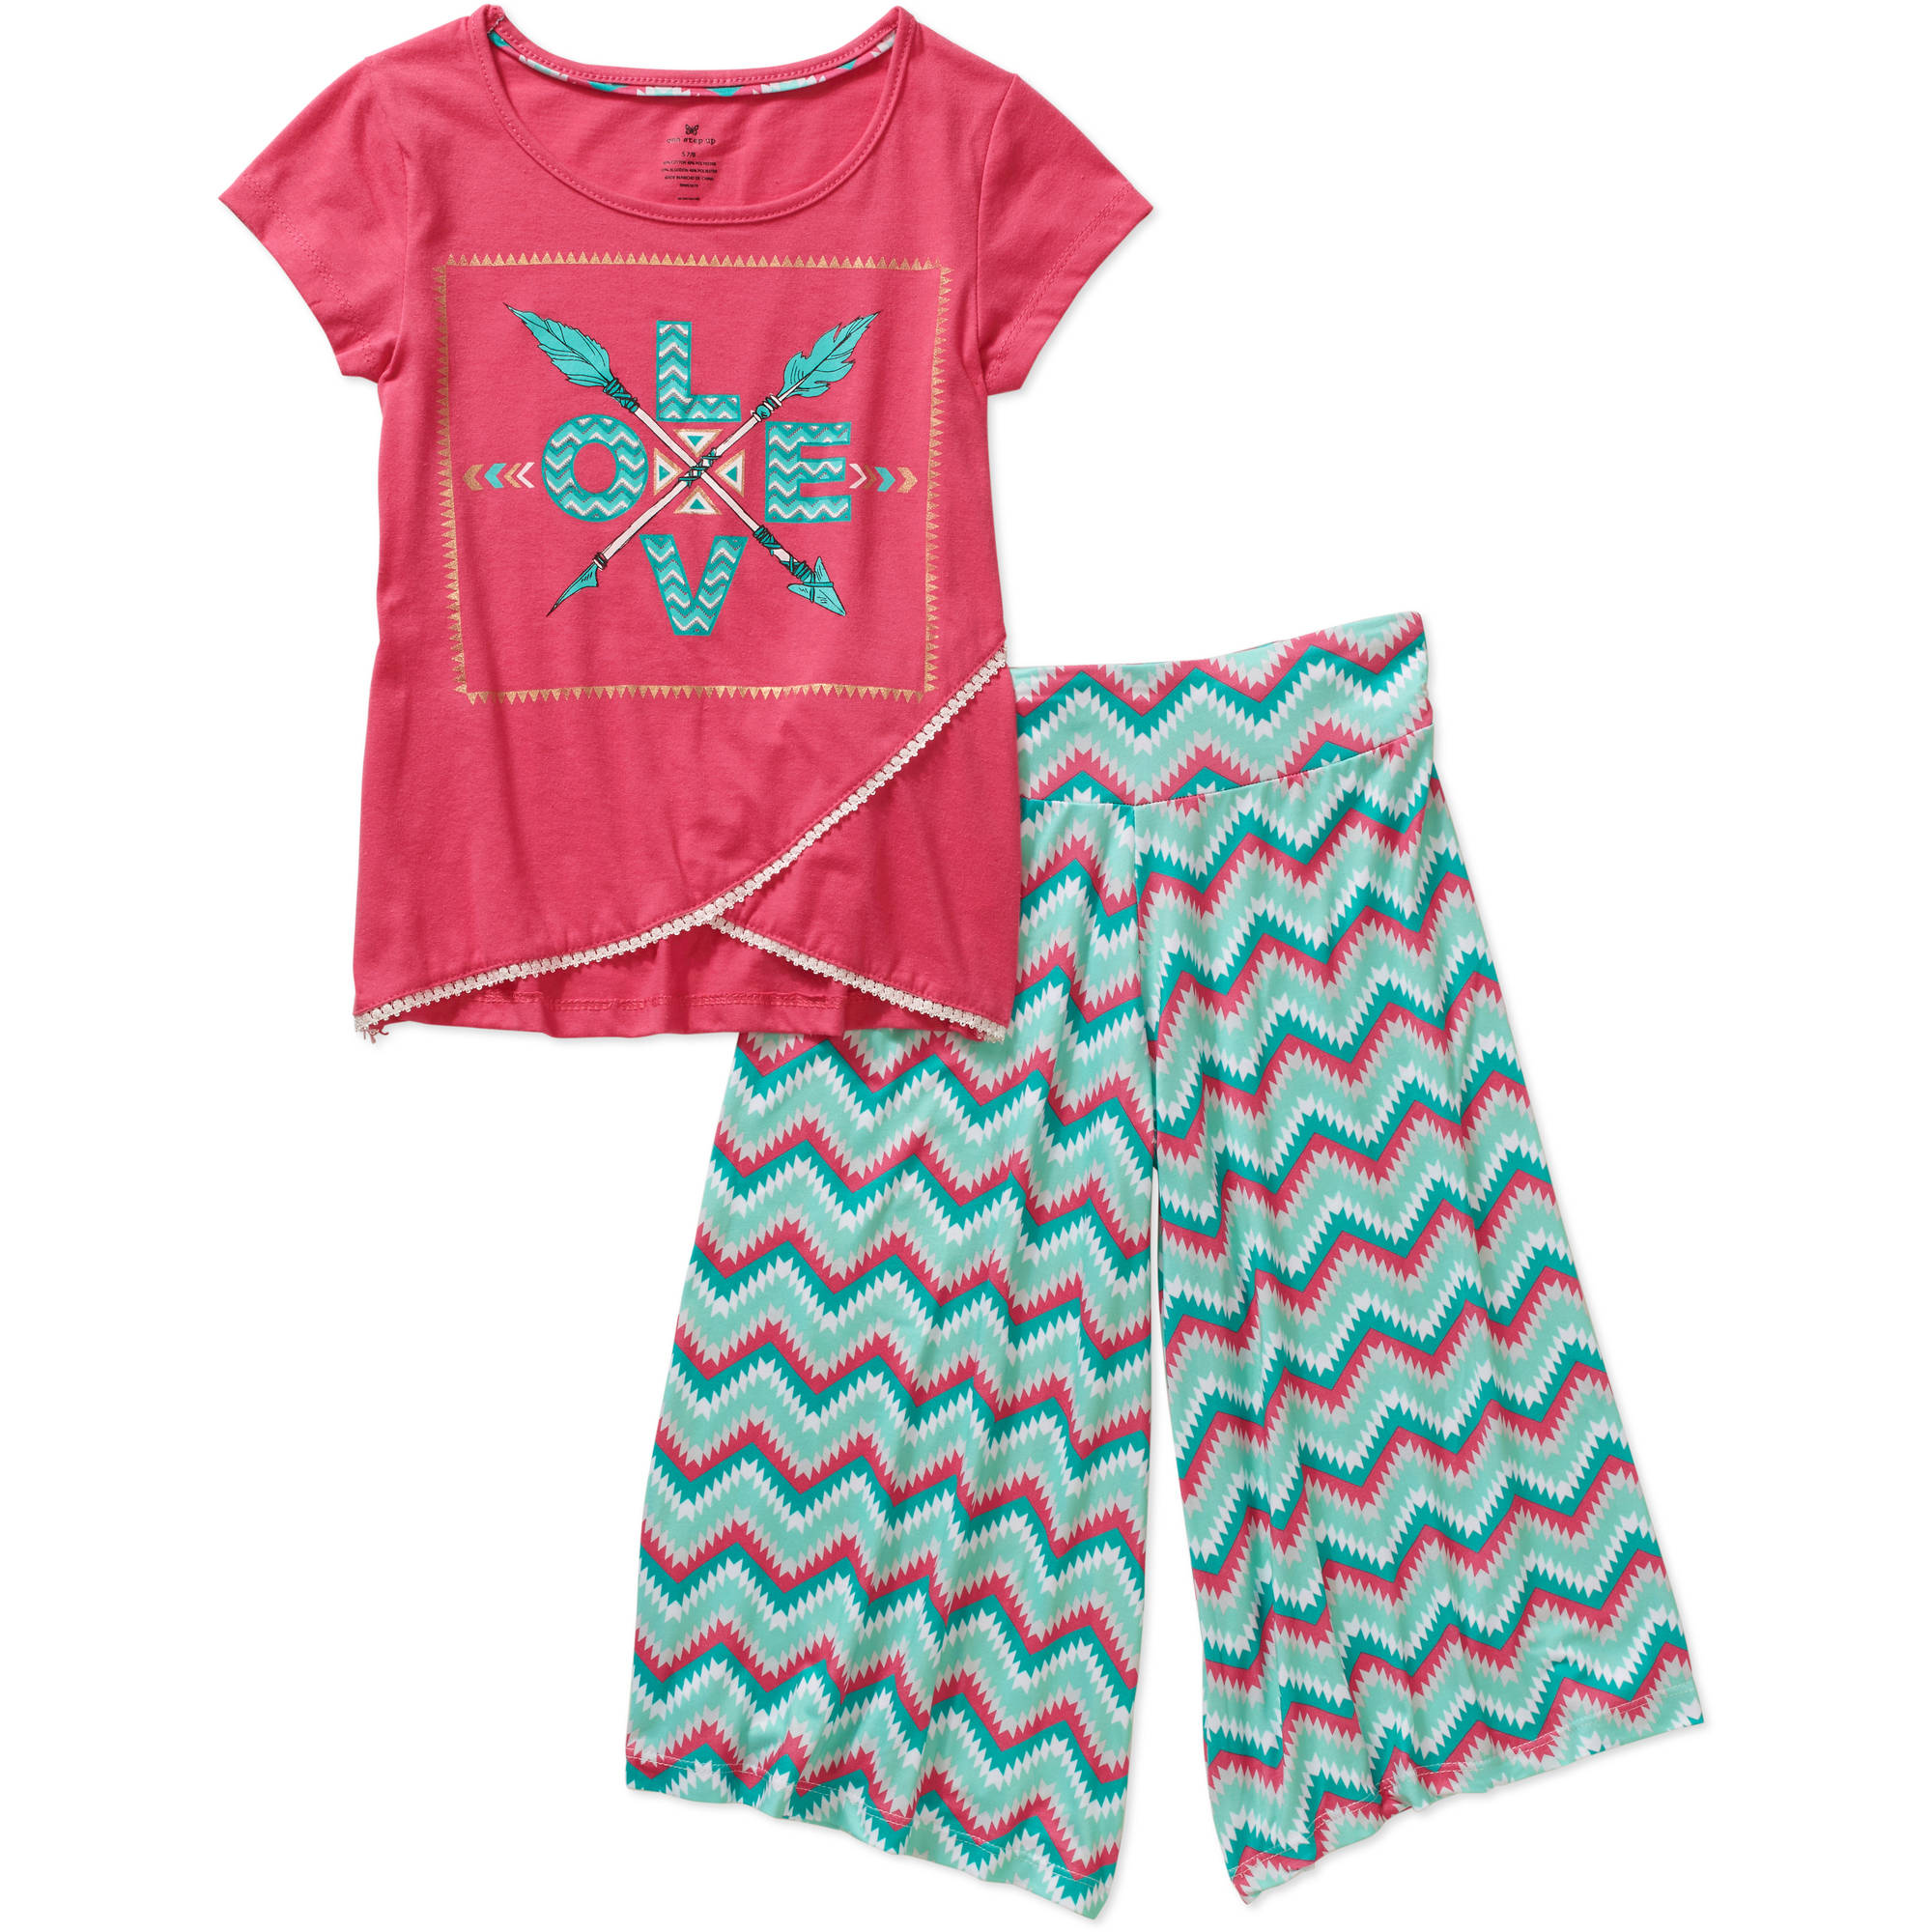 One Step Up Girls Gaucho Libre Printed Knit Crochet Trim Tee & Gaucho Pant Set